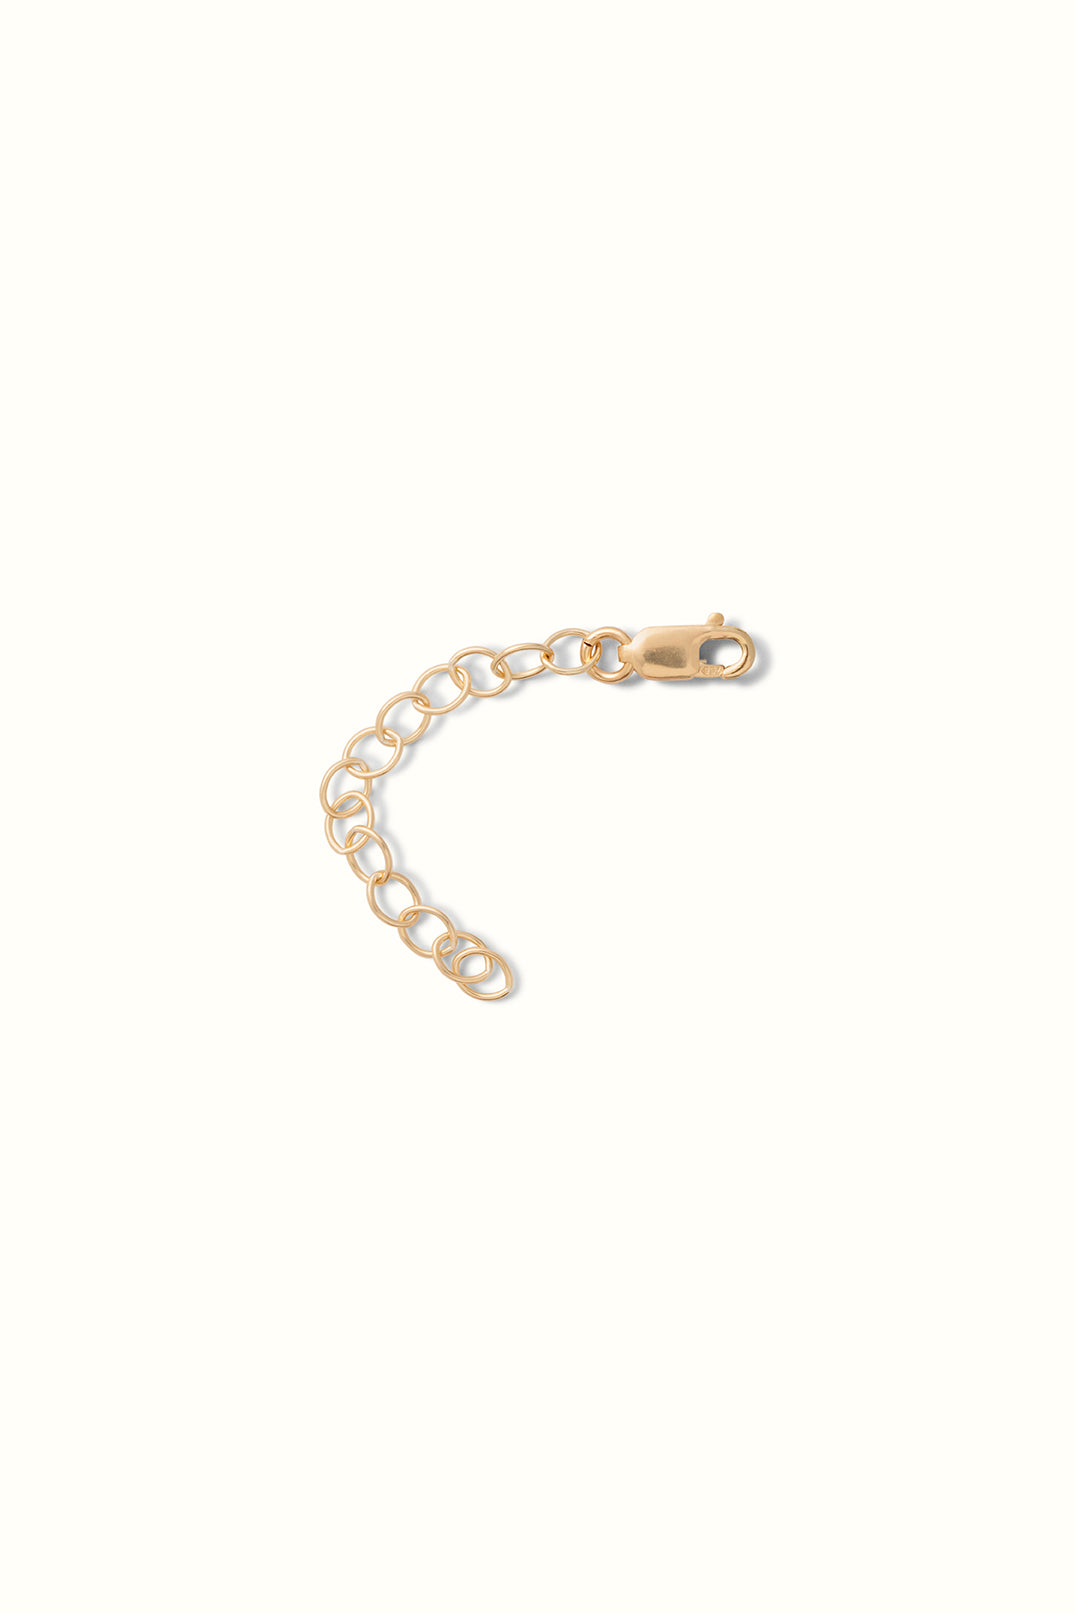 a close up of a gold filled necklace and bracelet extender chain on a white background